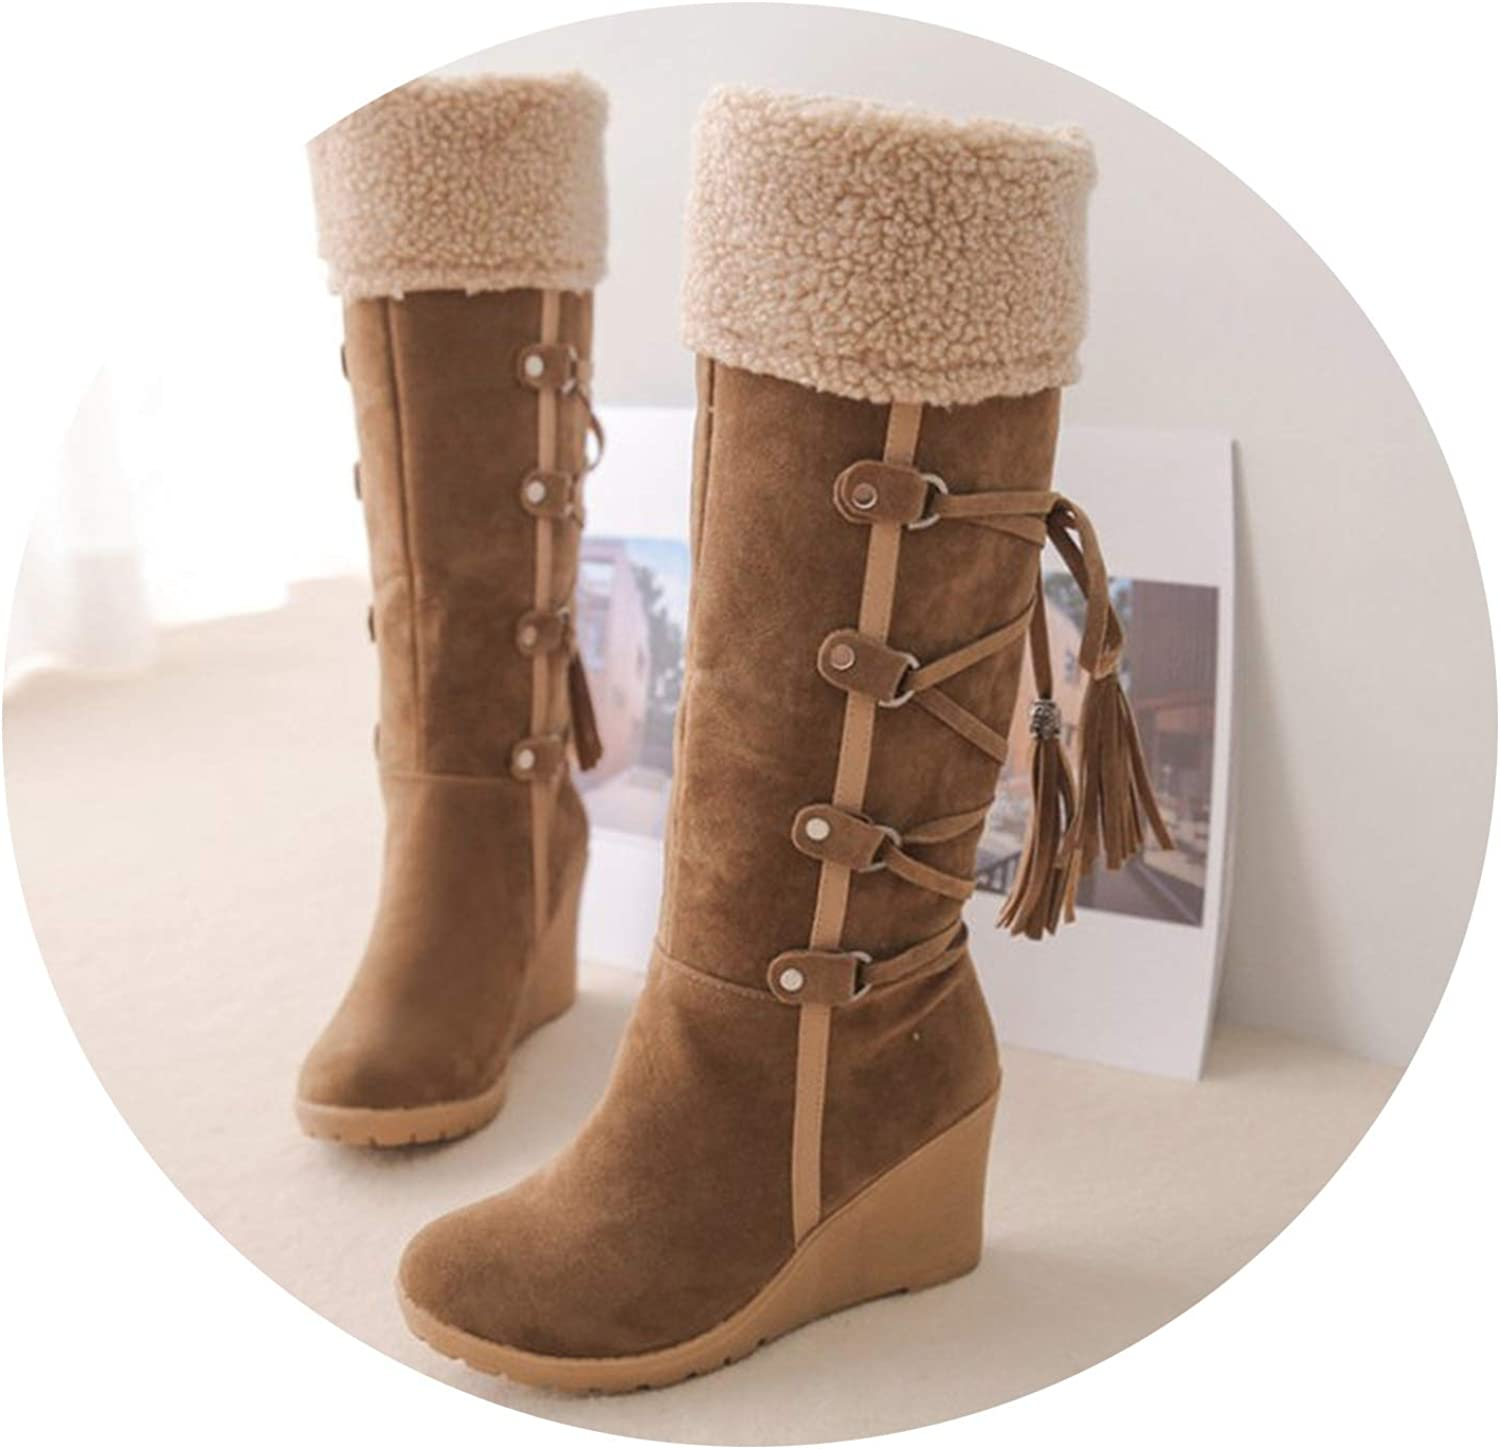 Boots Cross Strap shoes Plush Wedge Heel Knee High Cotton Padded Faux Fur Snow Boots